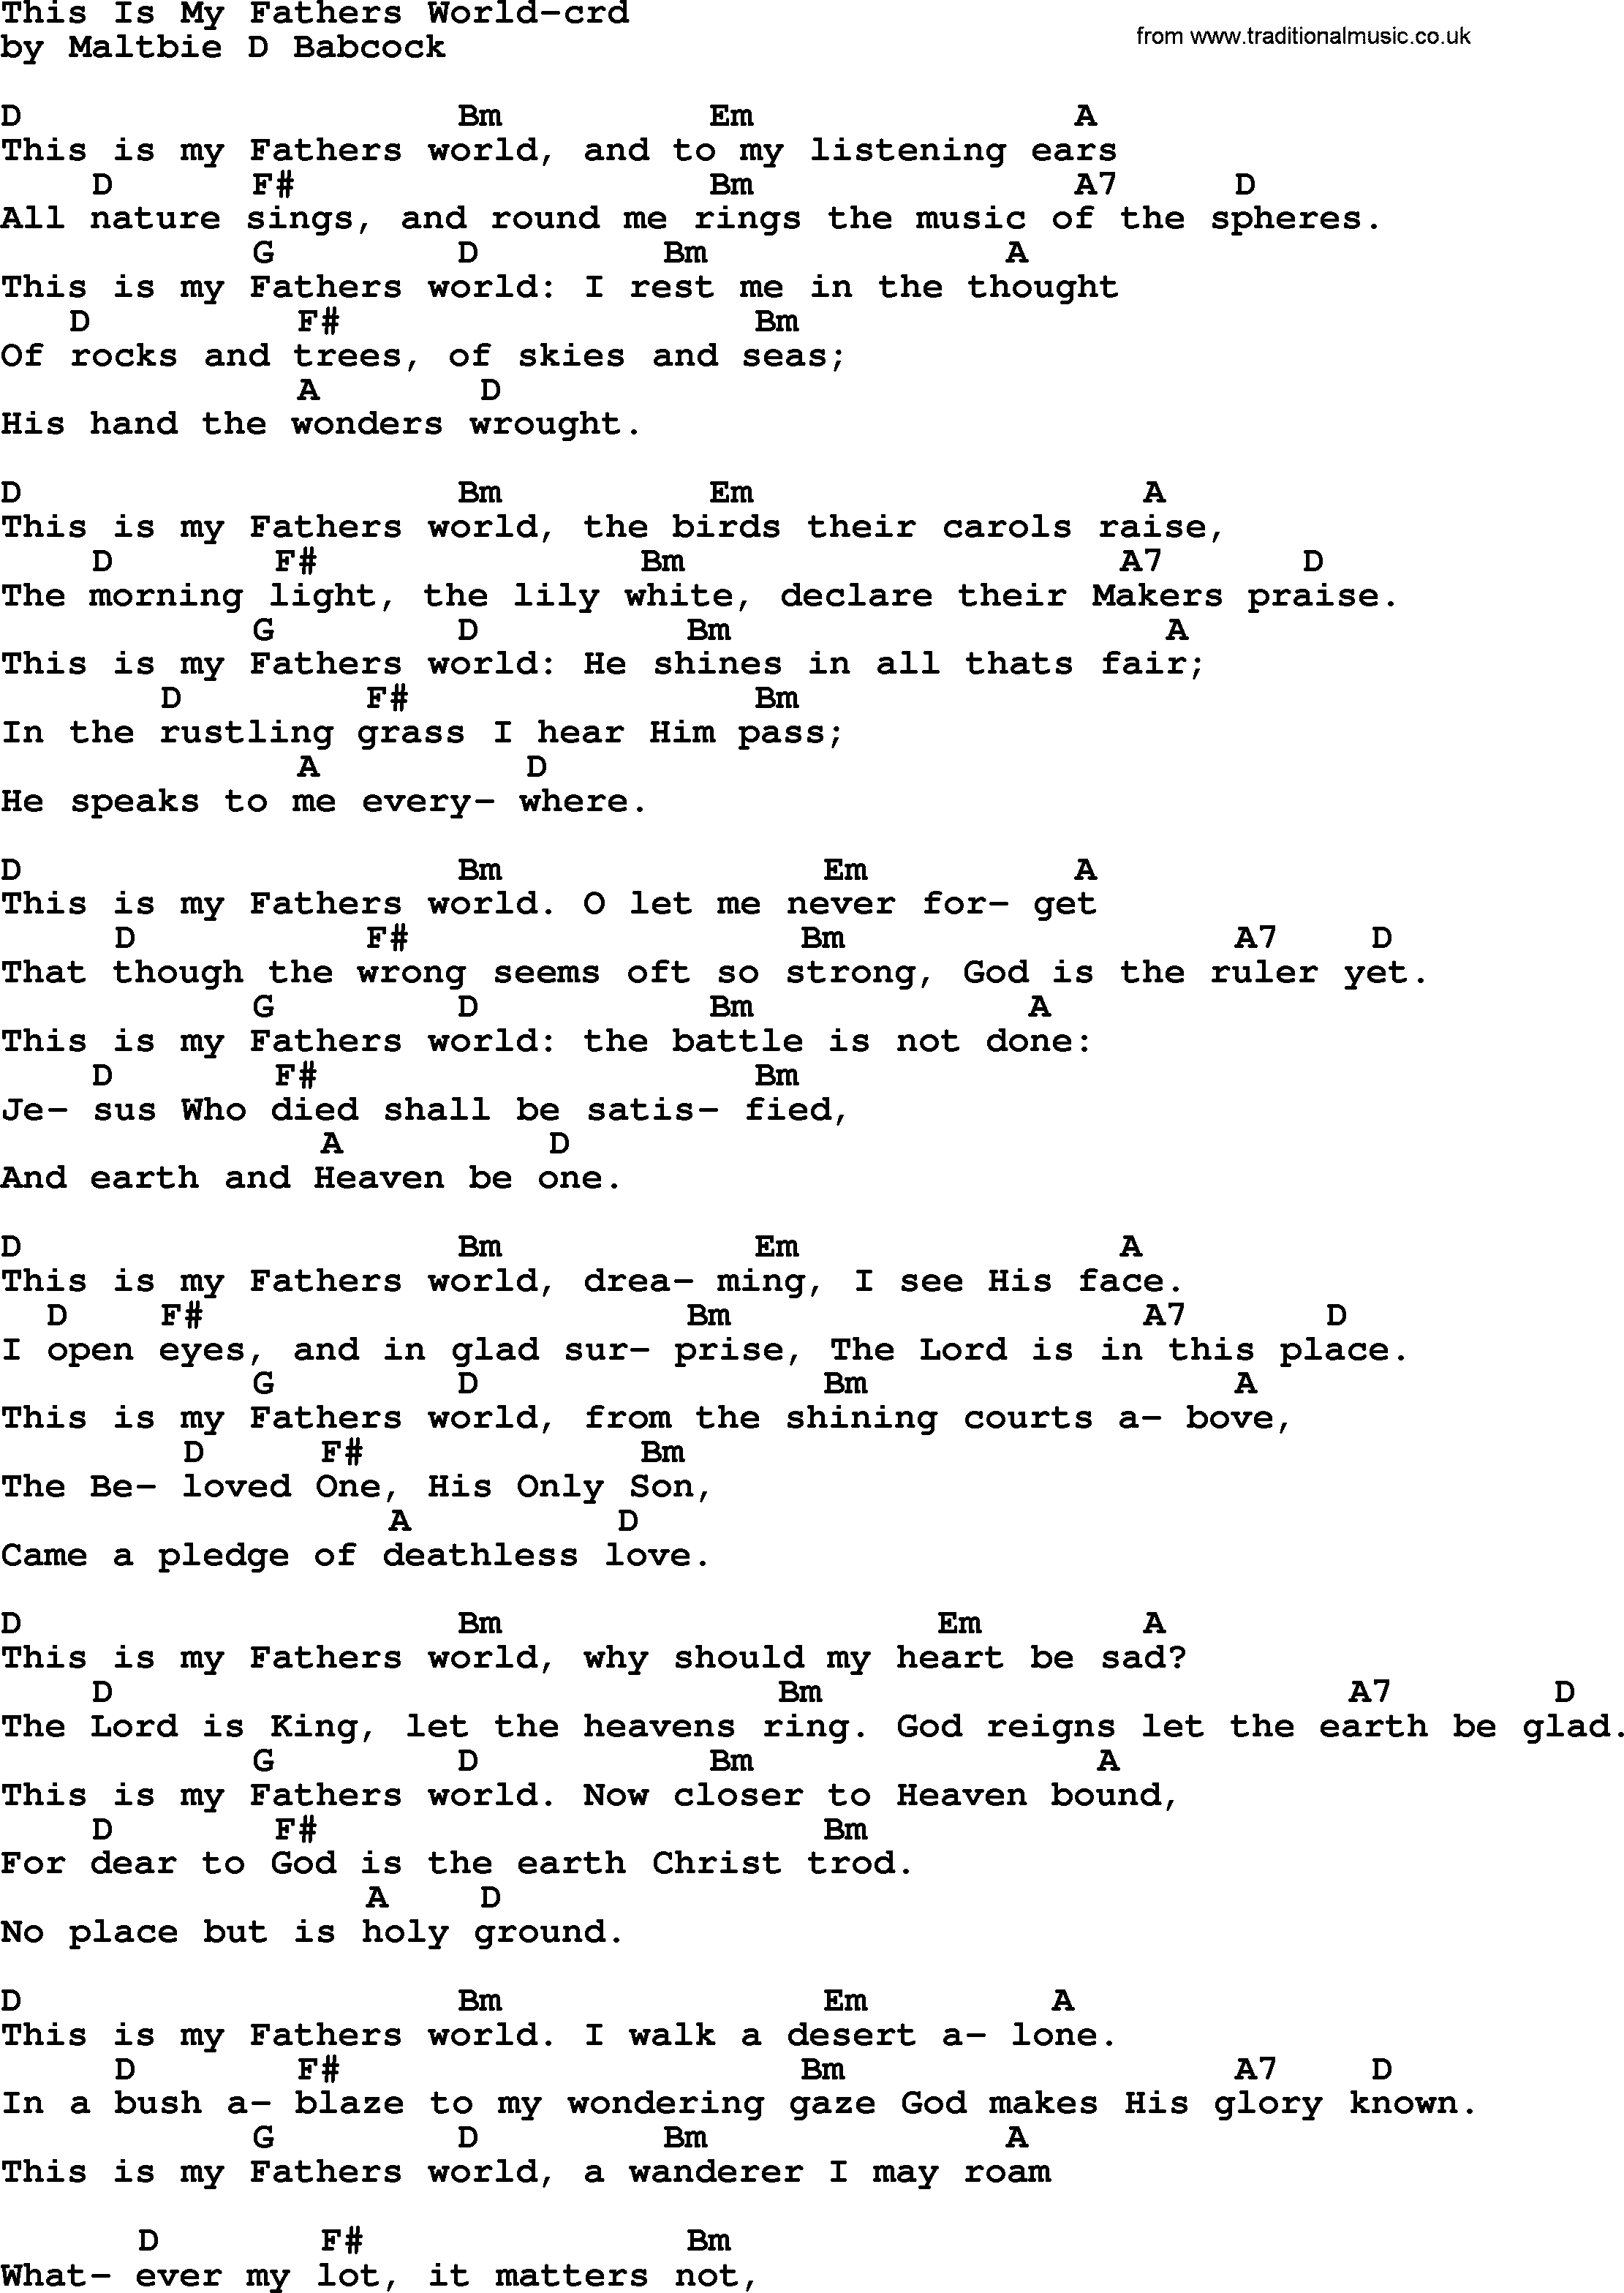 Open The Eyes Of My Heart Chords Top 500 Hymn This Is My Fathers World Lyrics Chords And Pdf